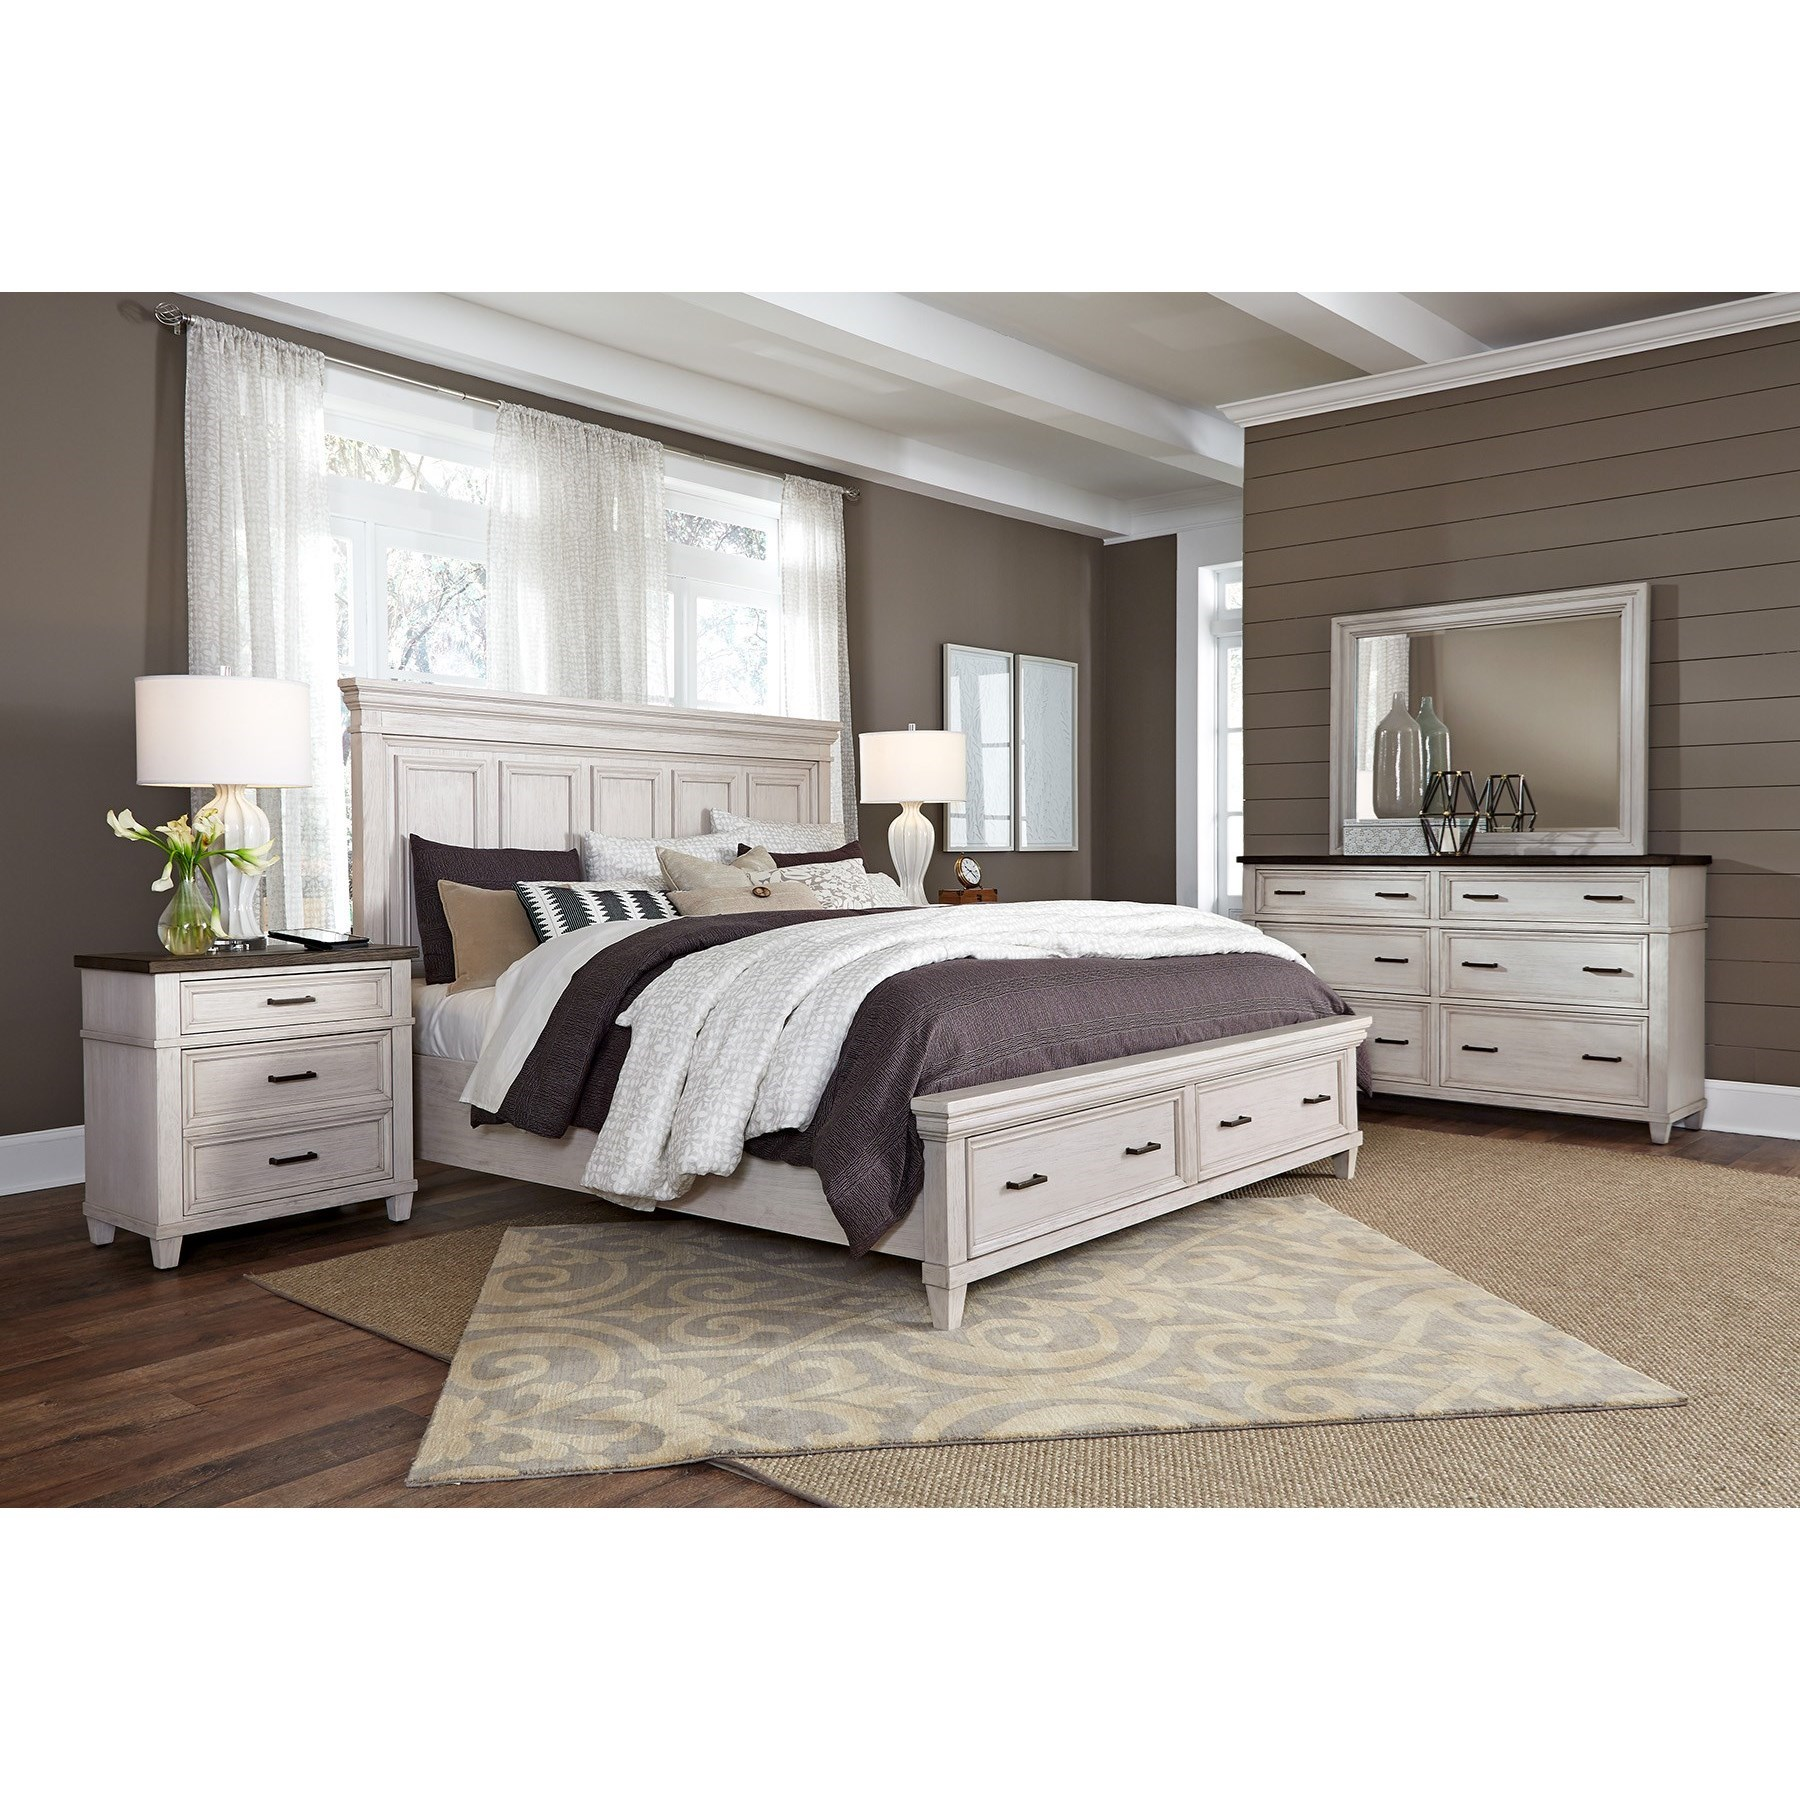 Caraway Cal King Bedroom Group by Aspenhome at Walker's Furniture